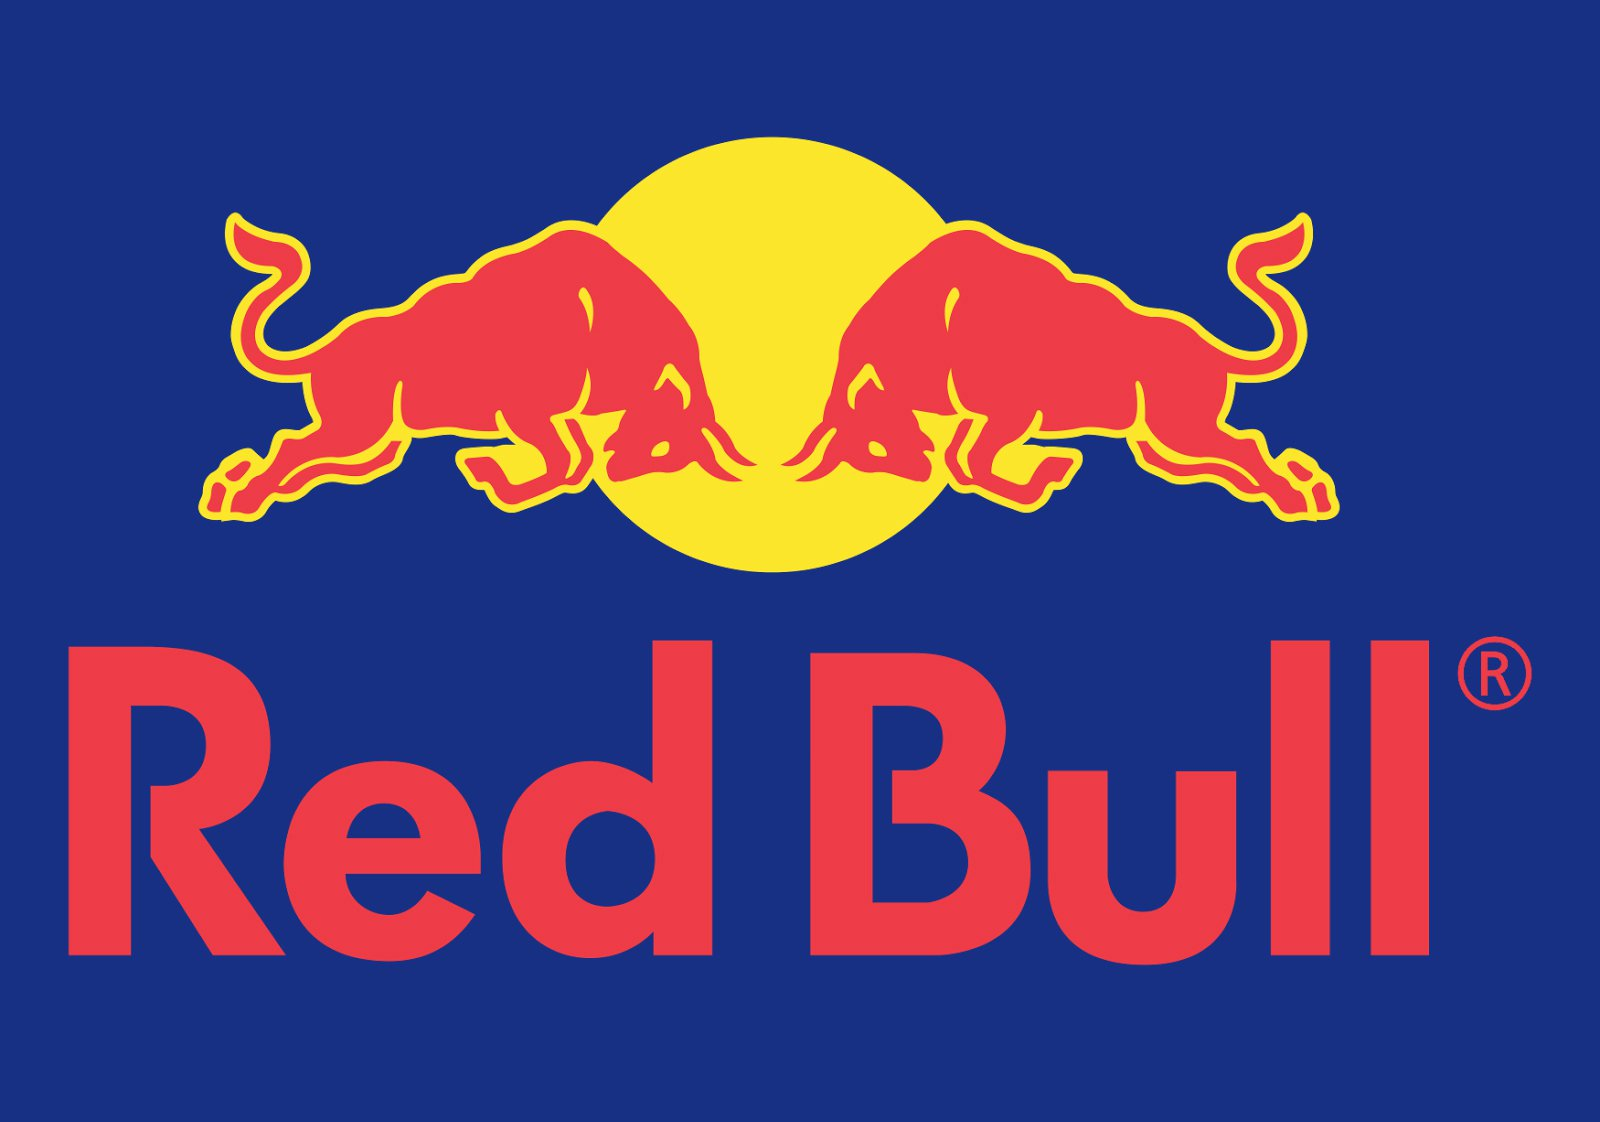 Red Bull won't give you wings.